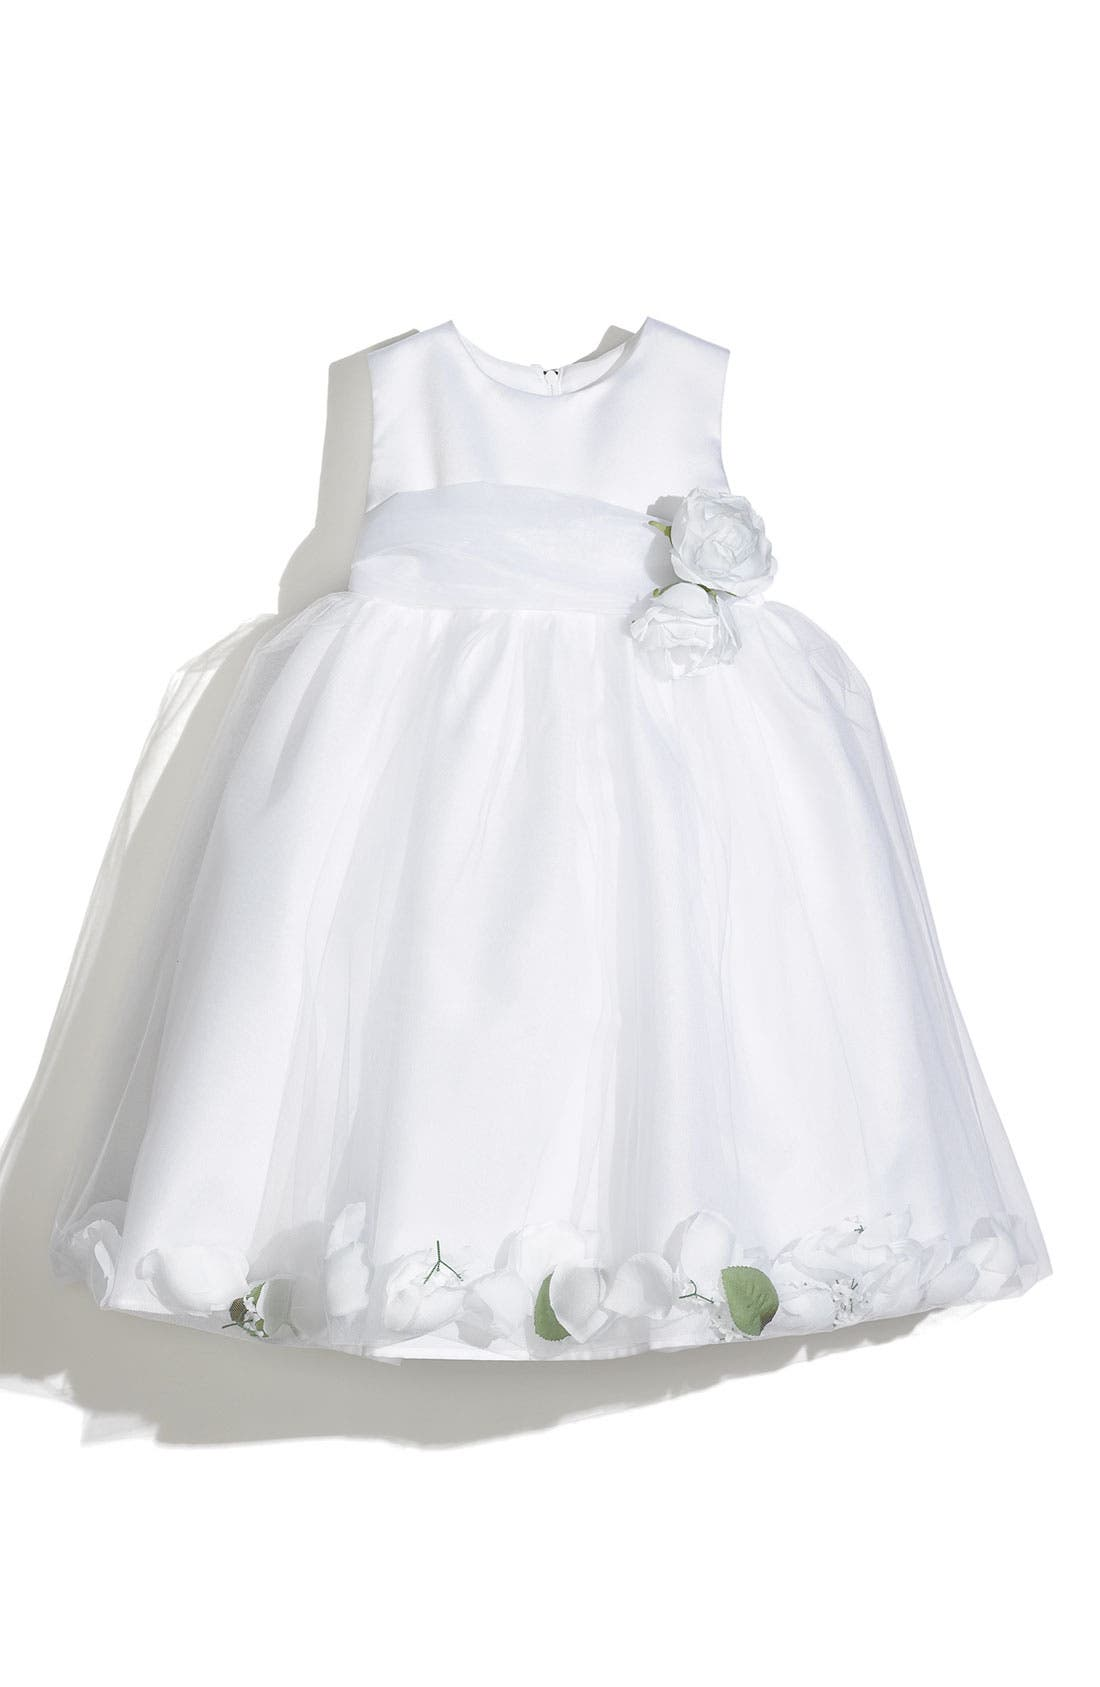 Main Image - Us Angels Petal Dress (Toddler Girls, Little Girls & Big Girls)